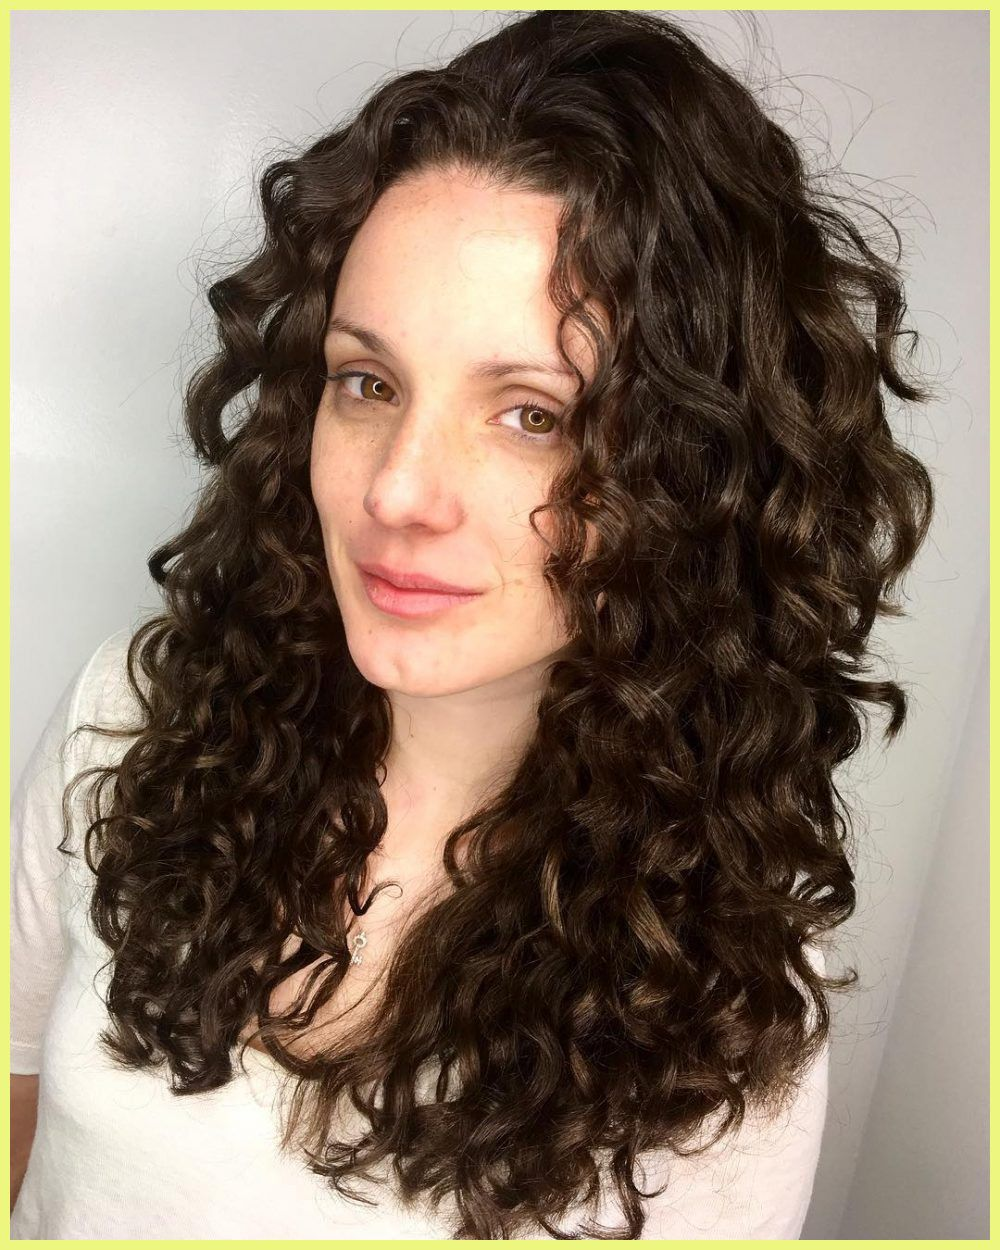 Long Curly Haircuts 95567 Long Curly In 2020 Curly Hair Styles Curls For Long Hair Curly Hair Styles Naturally